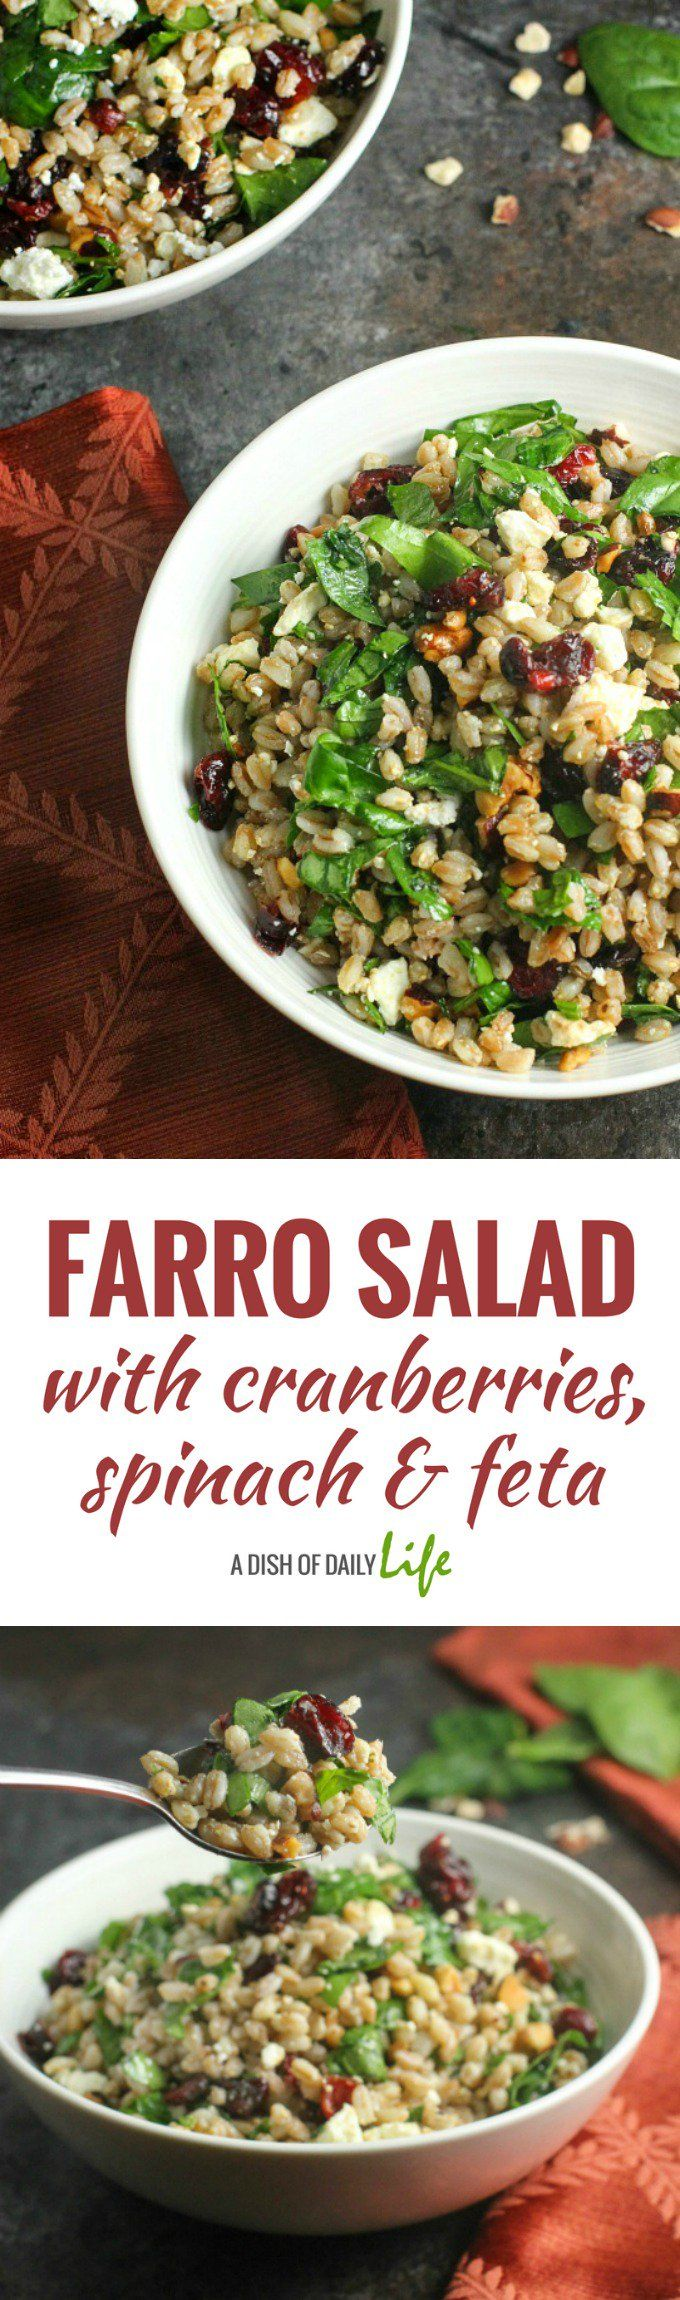 Healthy and delicious, this easy Farro Salad with spinach, cranberries and feta, topped with balsamic dressing, is a wonderful addition to your menu any time of year. #salad   #farro   #sidedishes